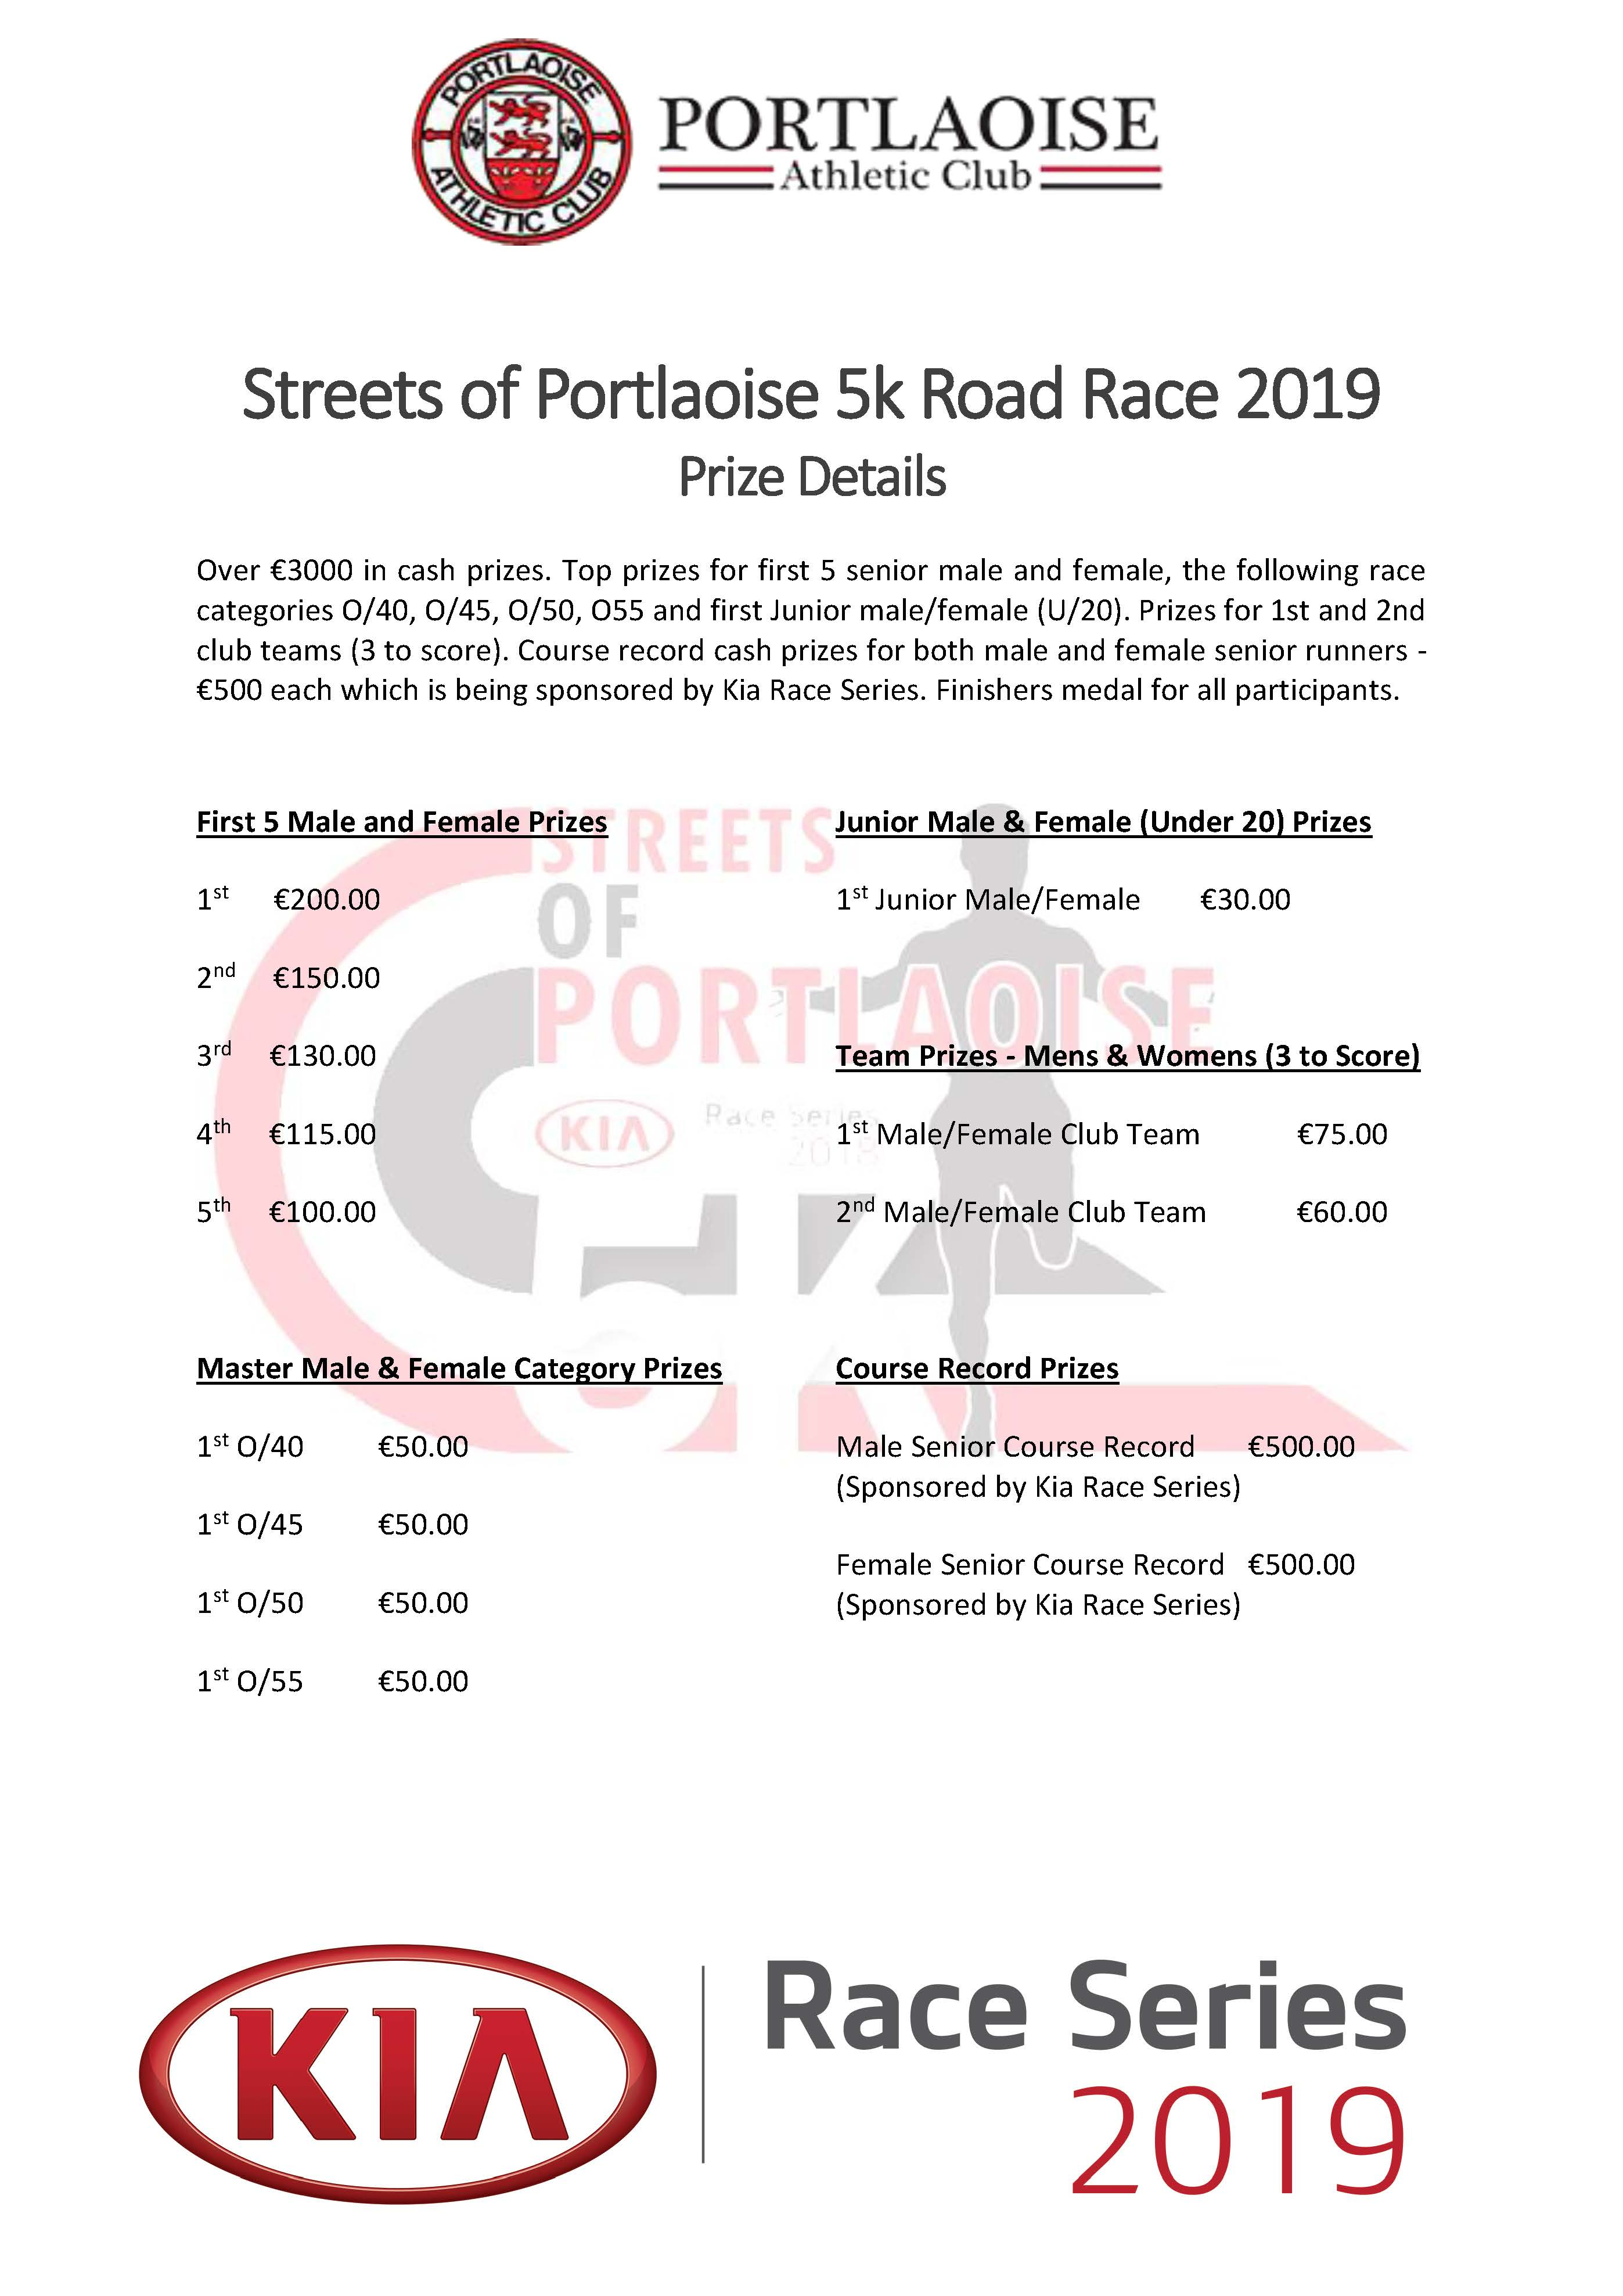 Streets of Portlaoise 5k Prize Details 2019